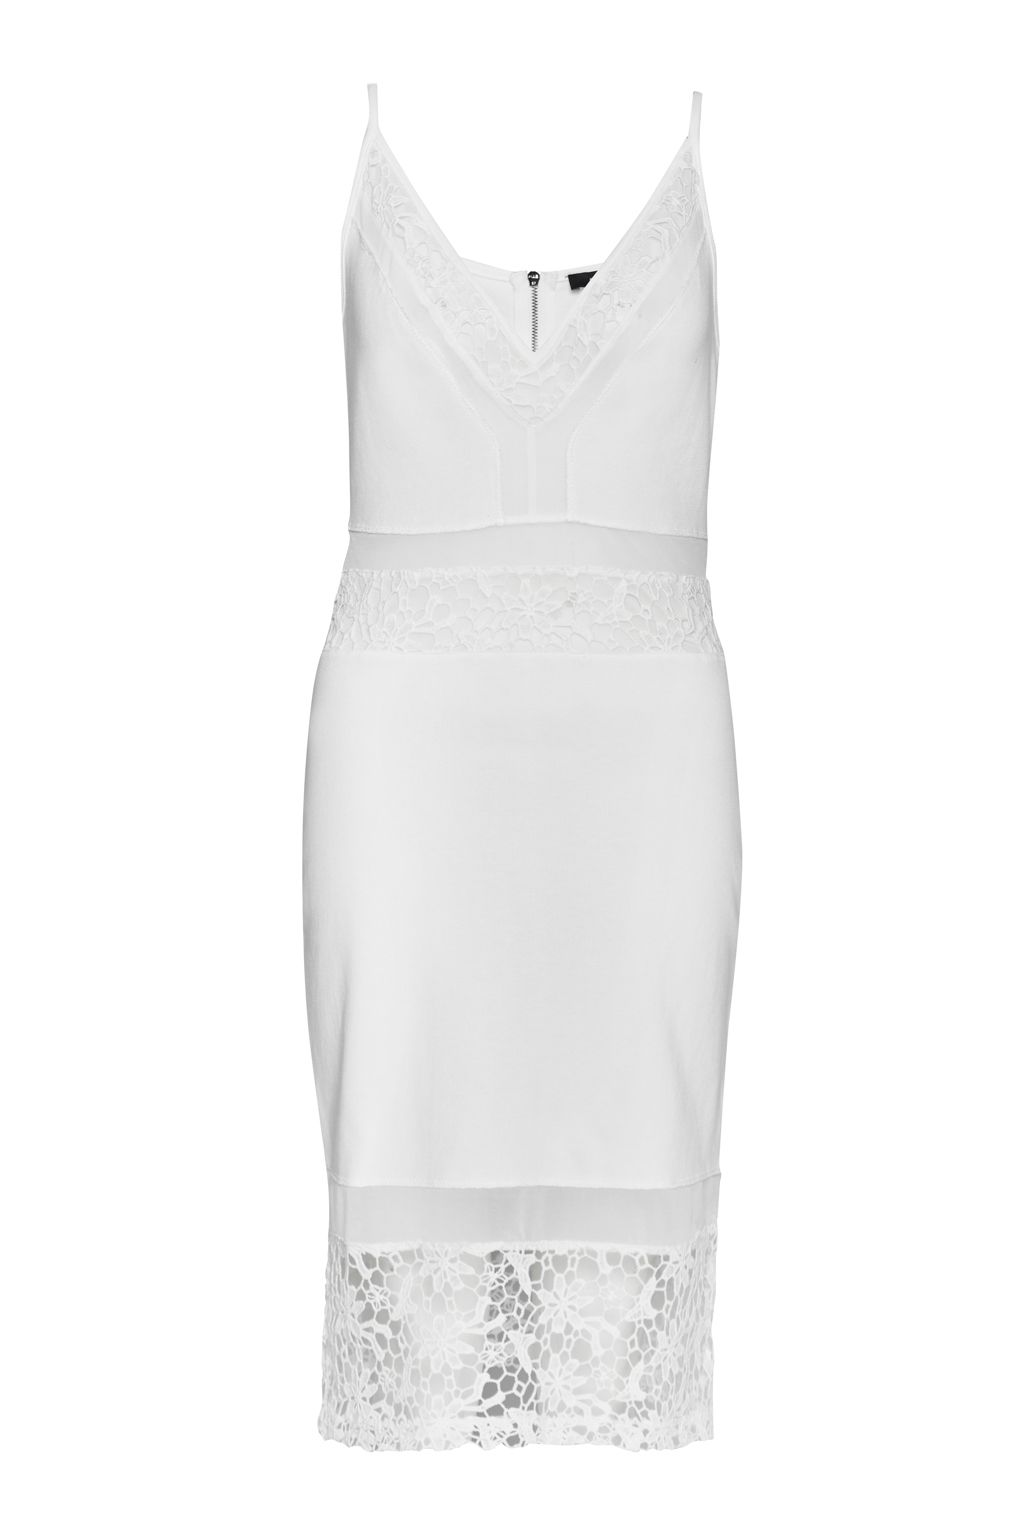 French Connection Noland Layer Jersey Strappy V Neck Dress, White